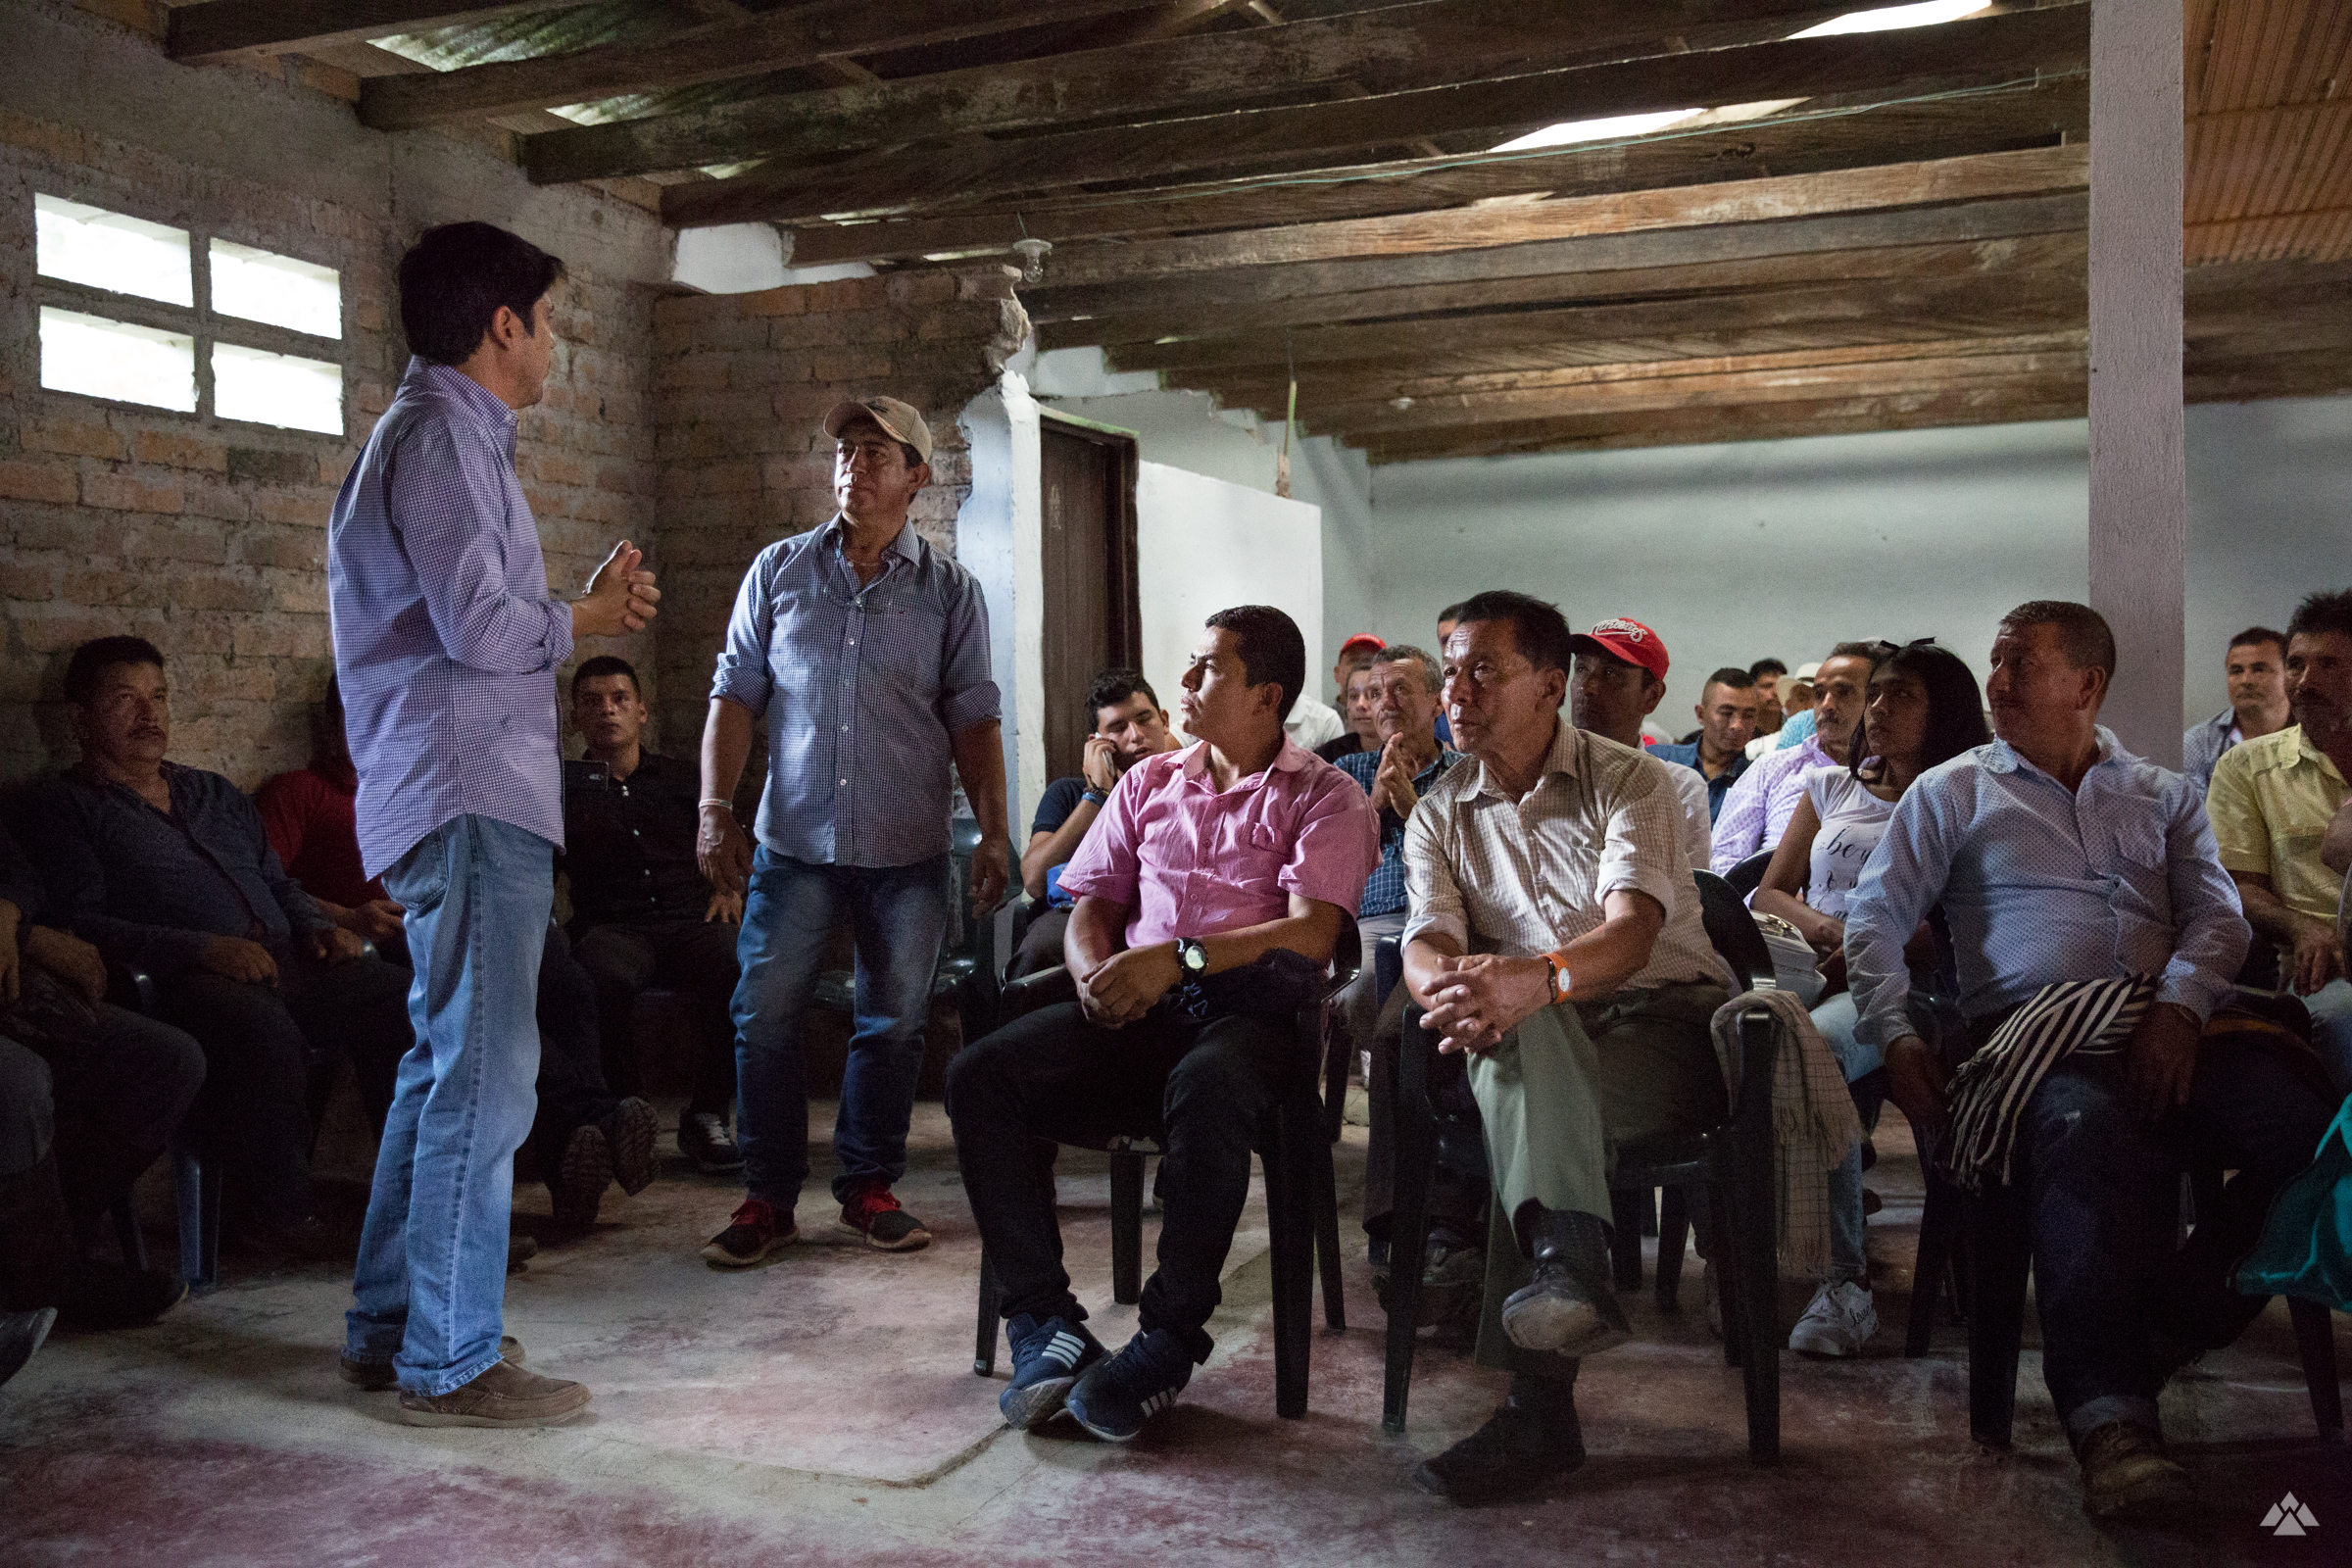 Meeting with producers and roasters, introduced by Juan Felipe, centre